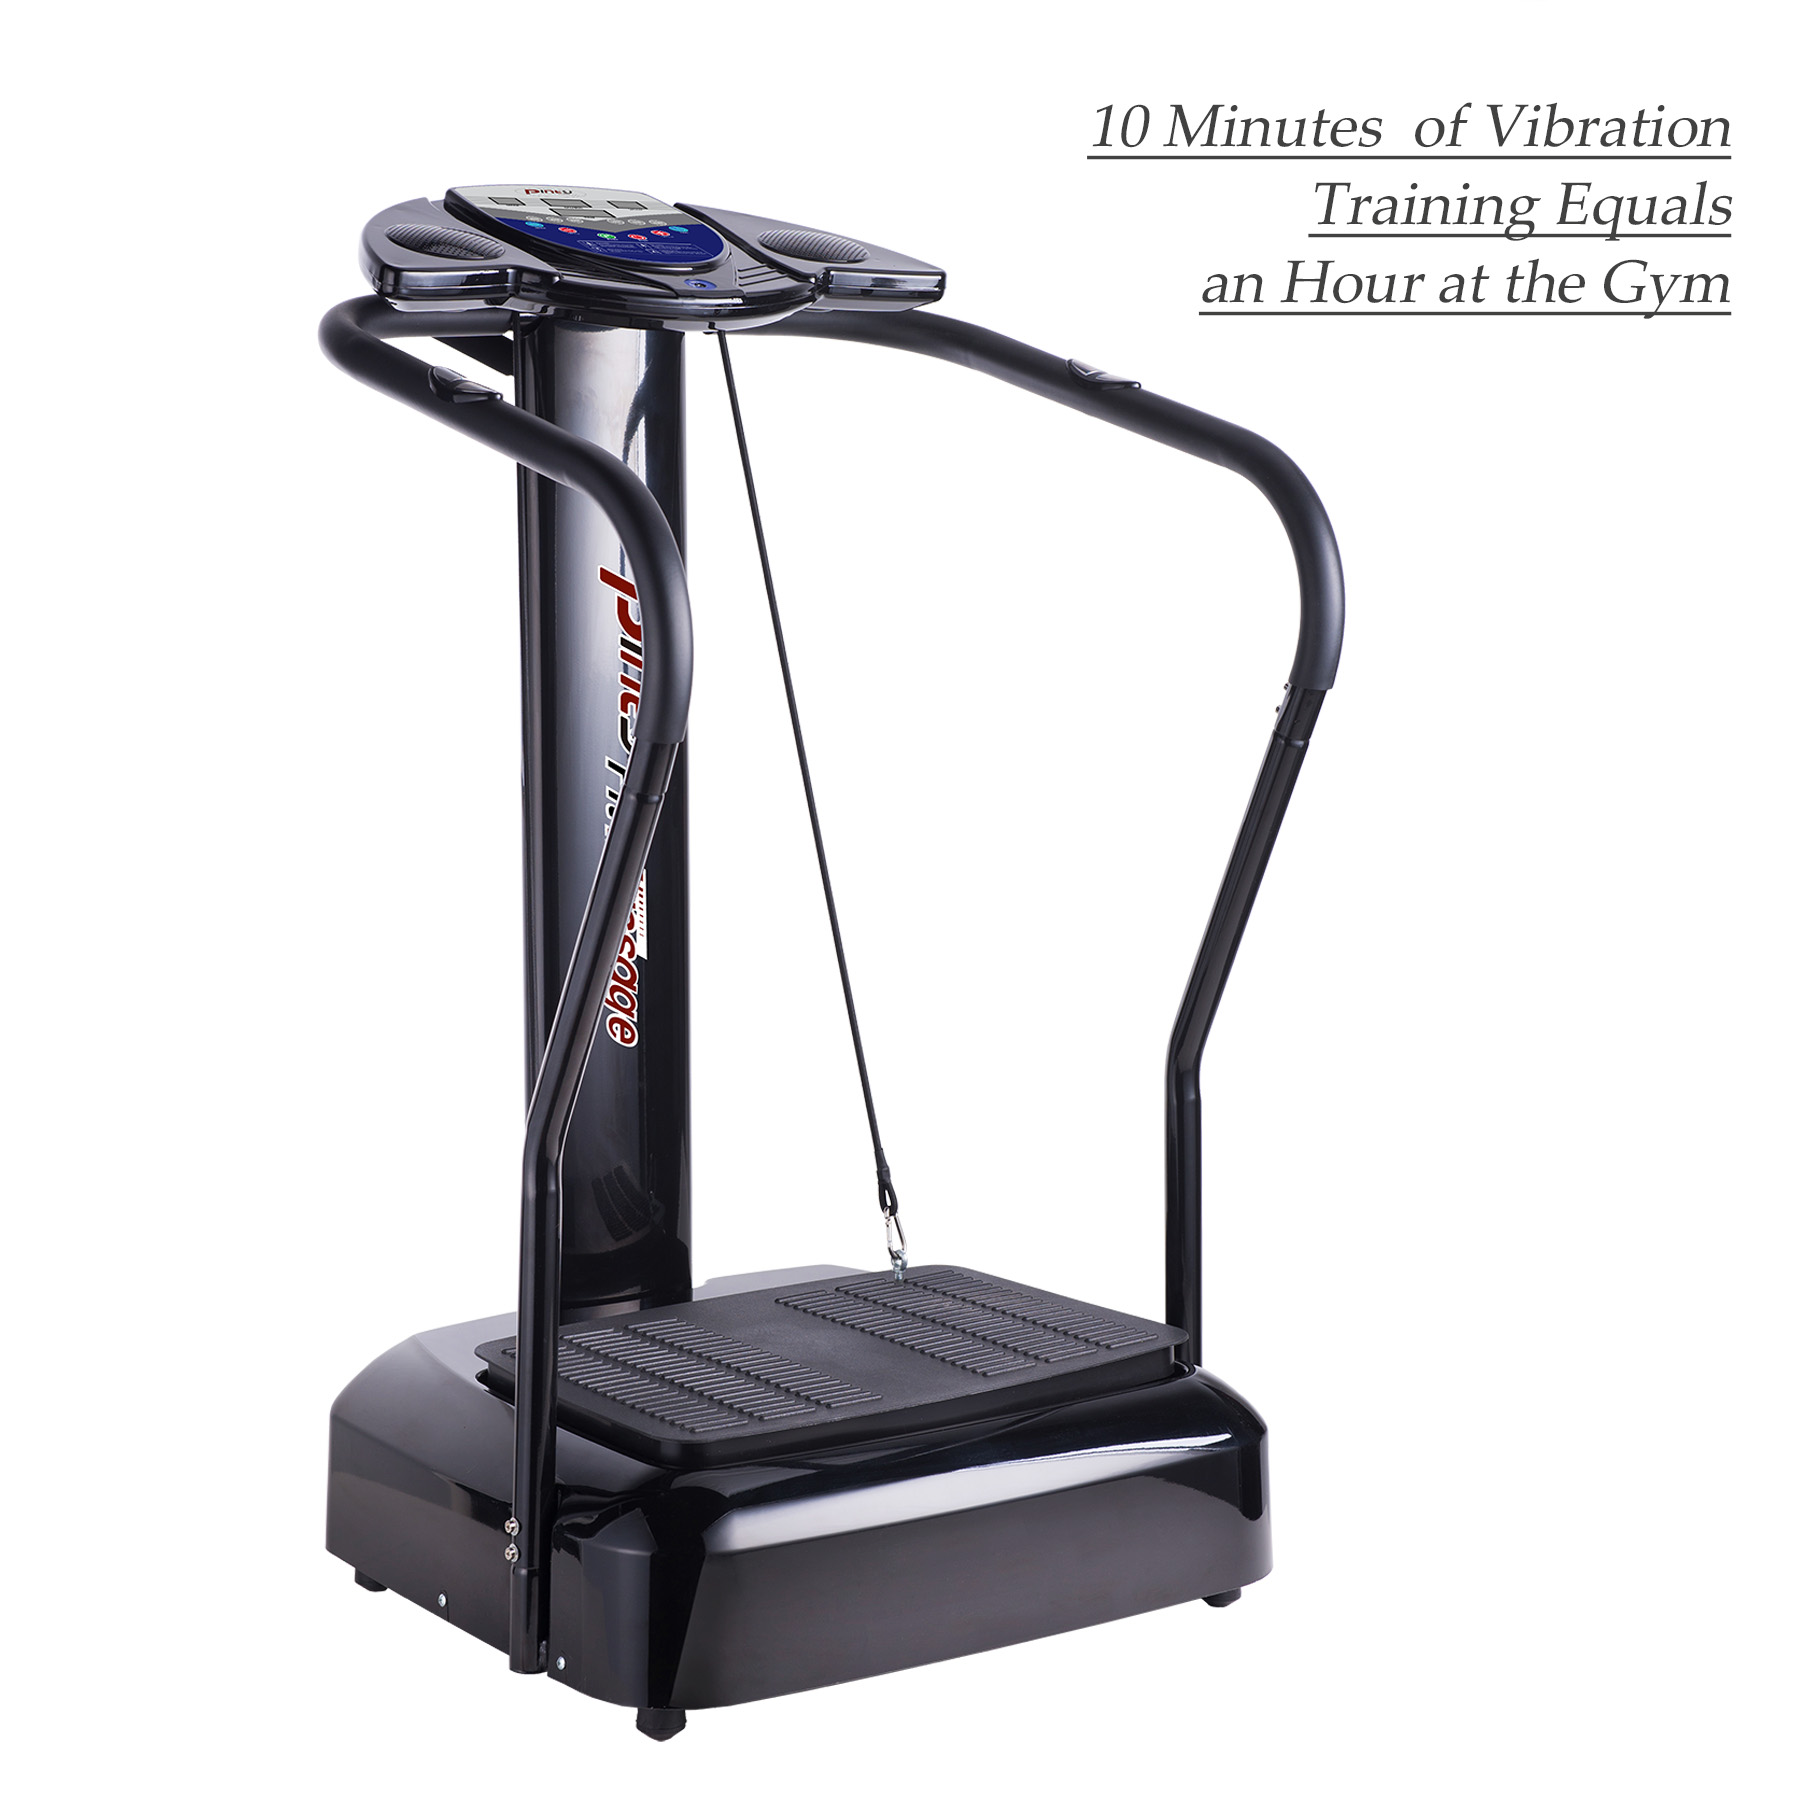 2000W Whole Body Vibration Platform Exercise Machine with MP3 Player (Black)